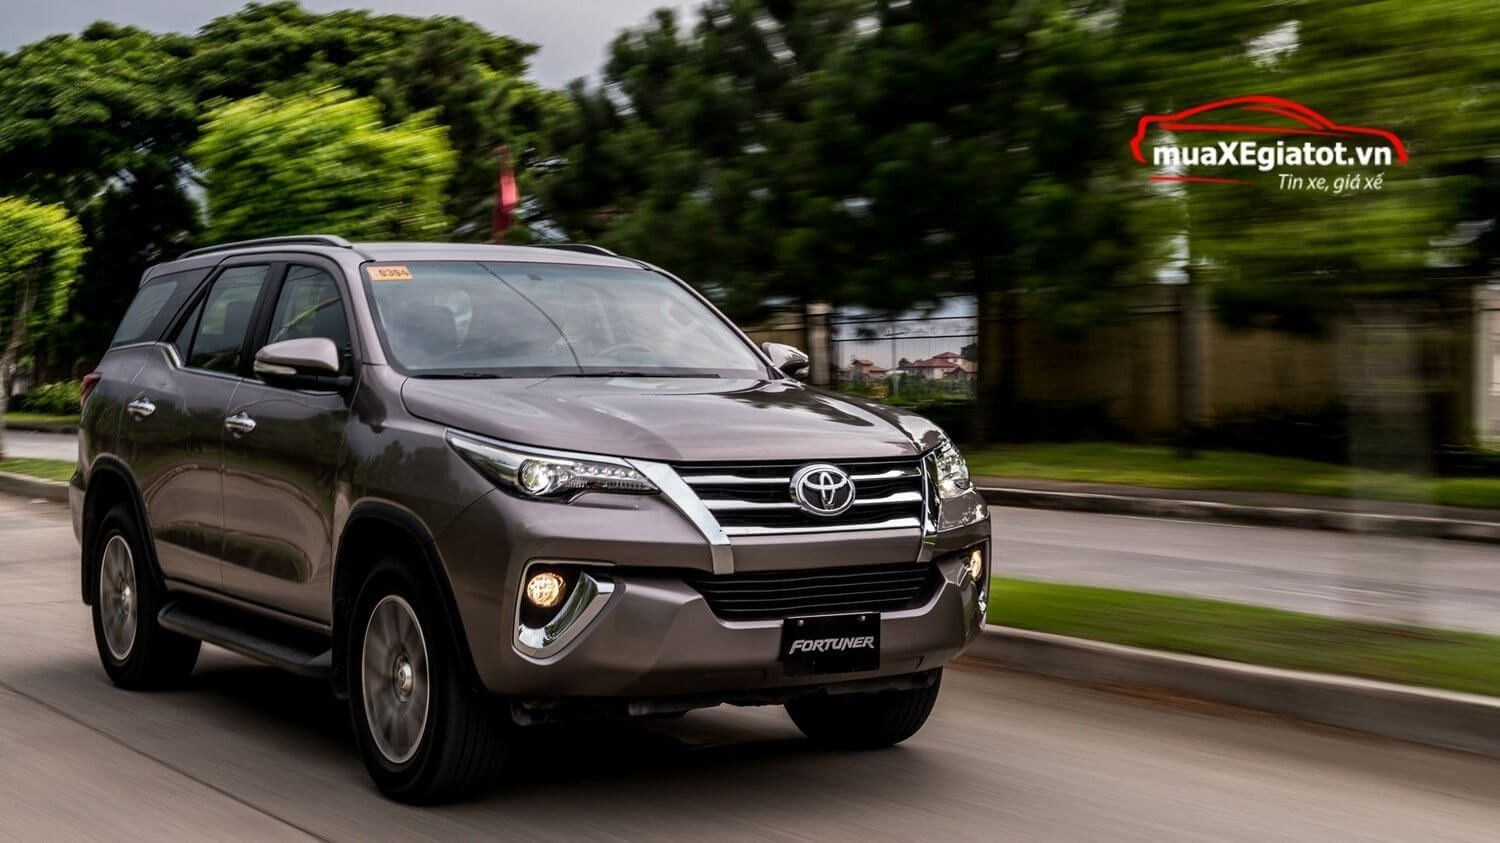 The Toyota Fortuner 2019 Rumors Car Price 2019 Toyota Cars Car Magazine Toyota